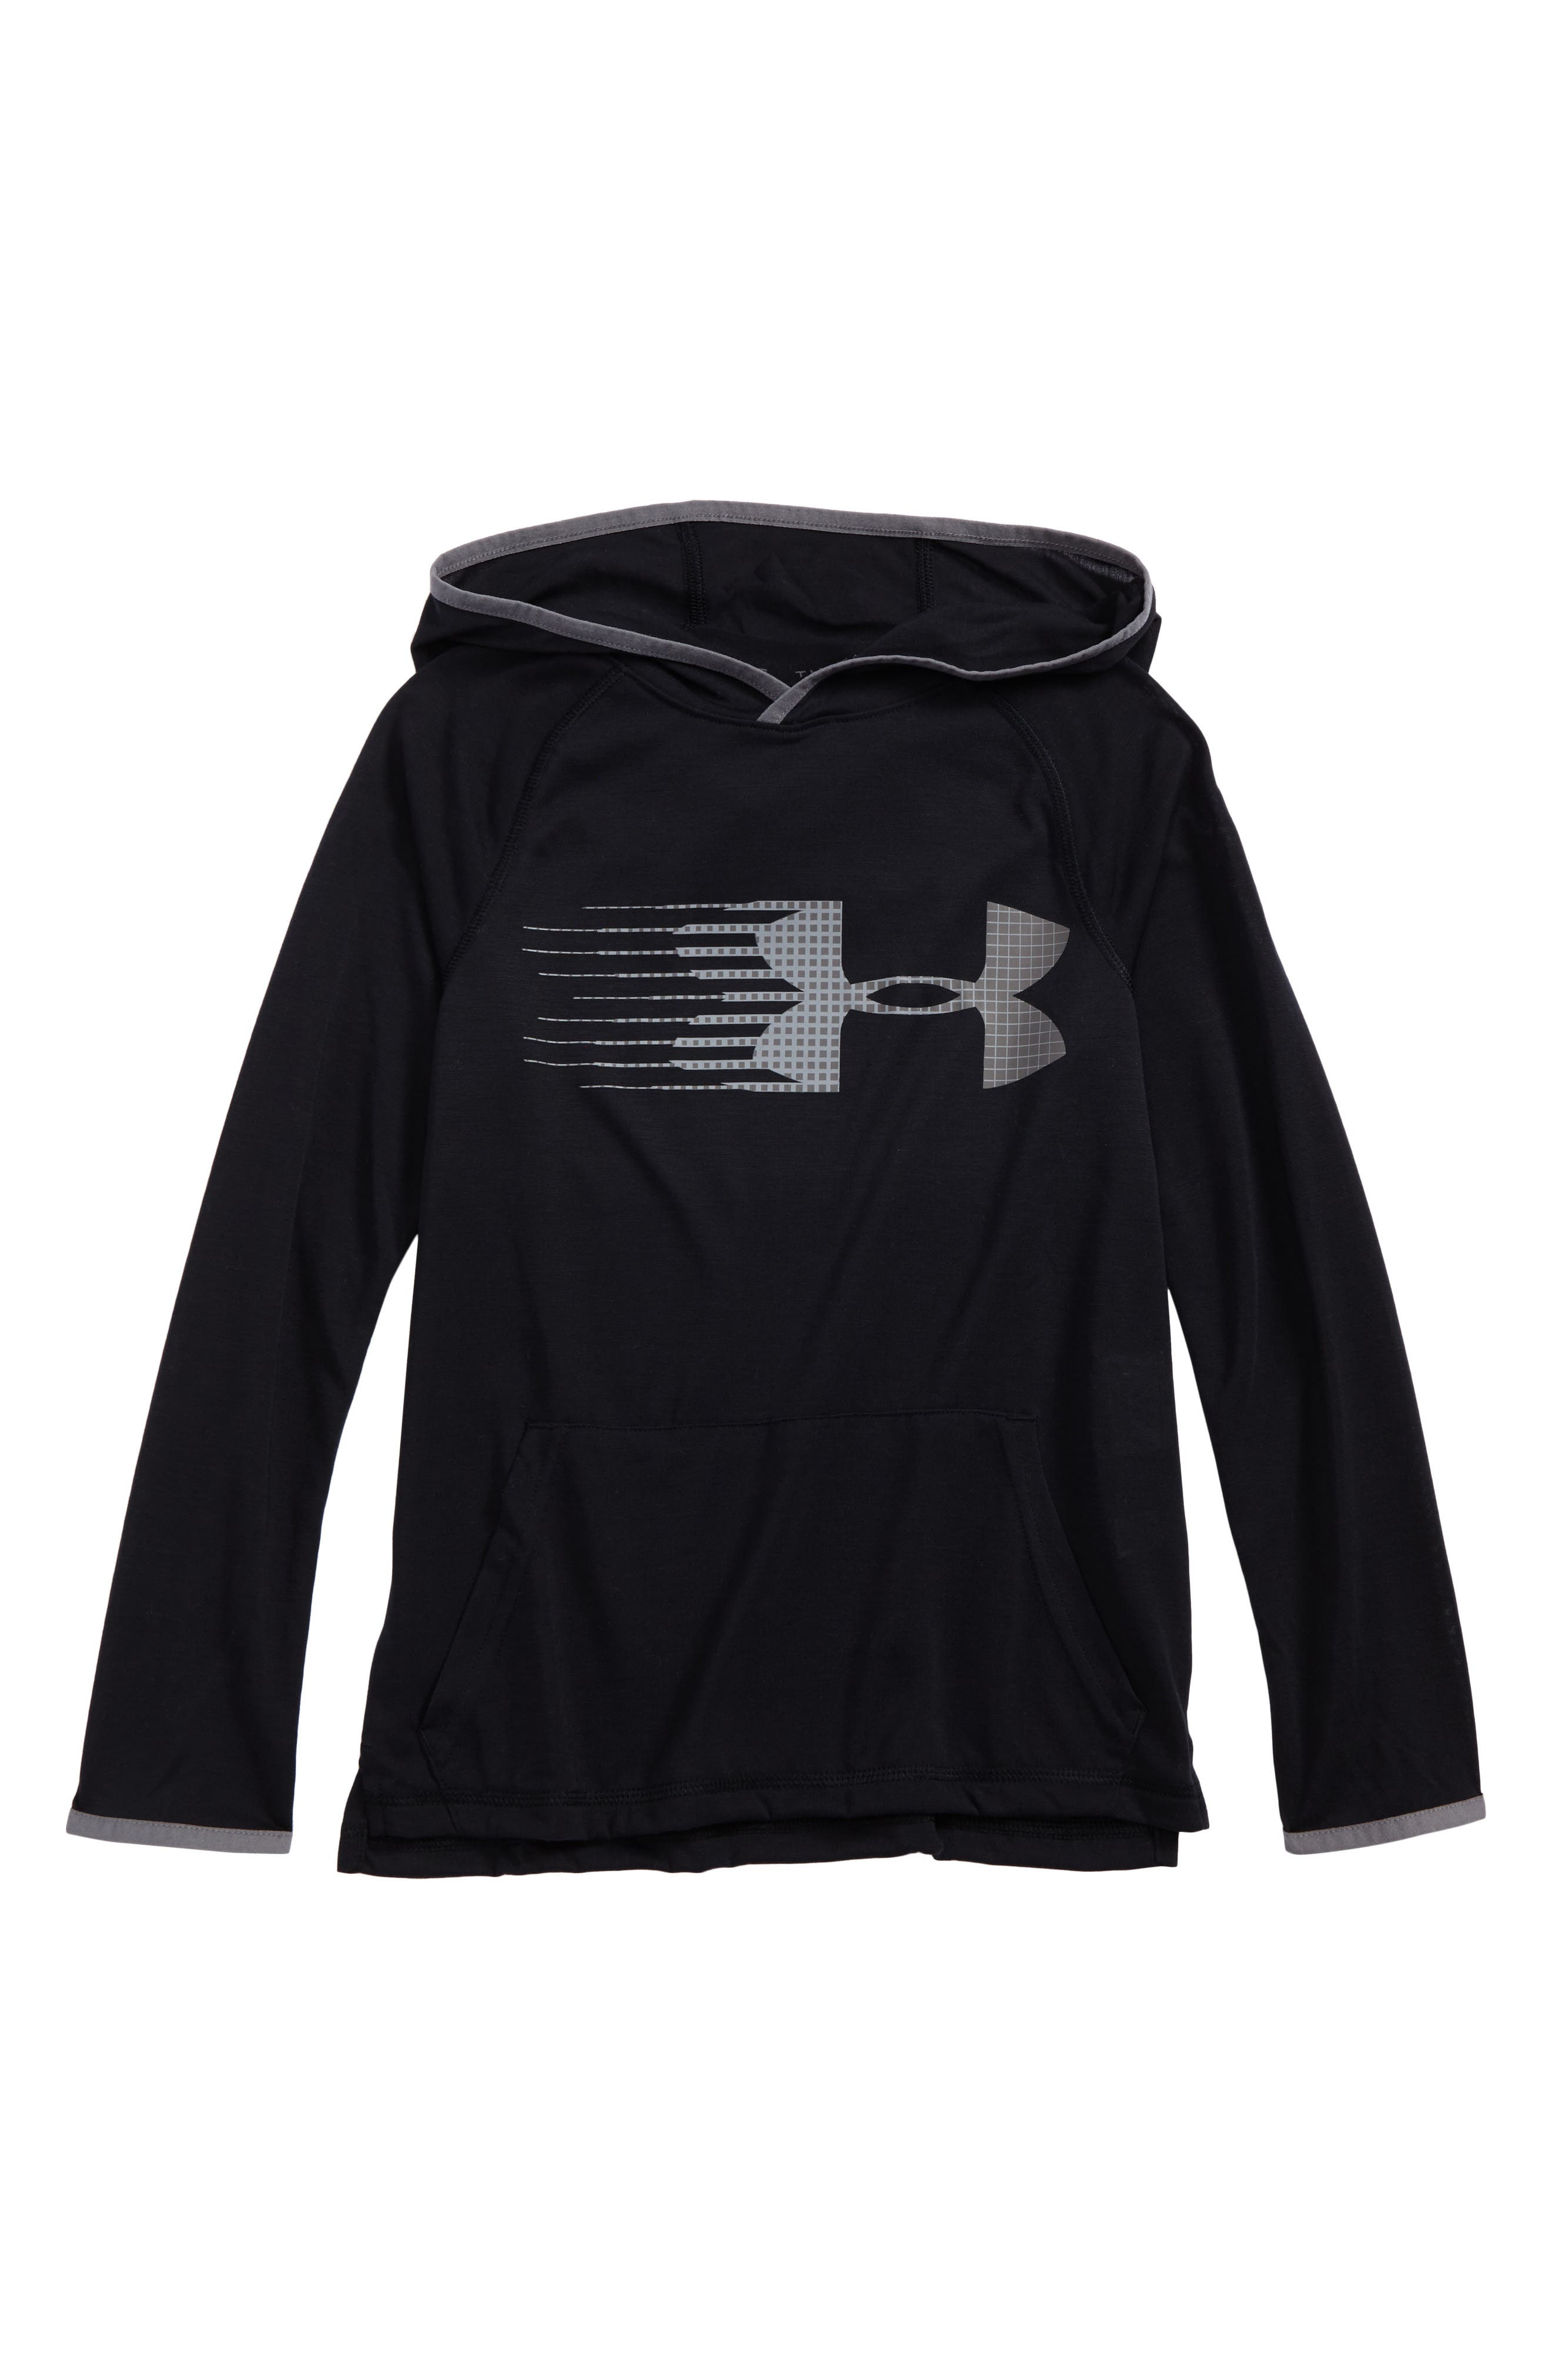 Threadborne HeatGear<sup>®</sup> Pullover Hoodie,                             Main thumbnail 1, color,                             Black/ Graphite